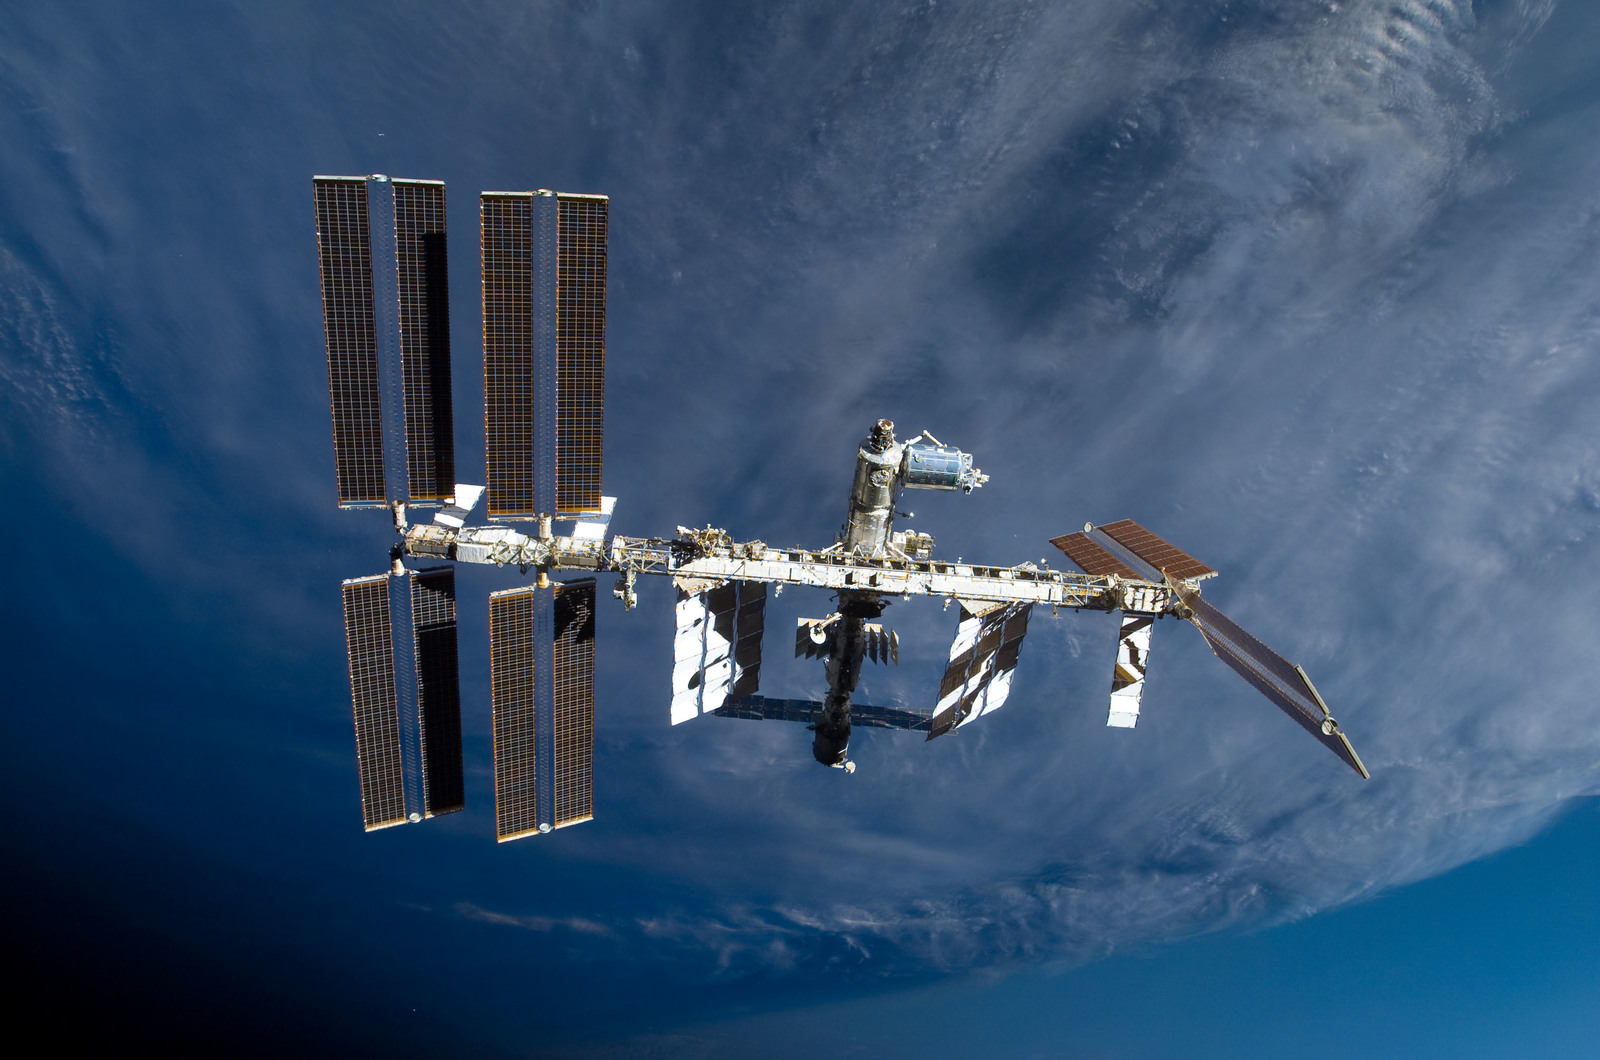 S122E009878 - STS-122 - View of ISS after STS-122 Undocking